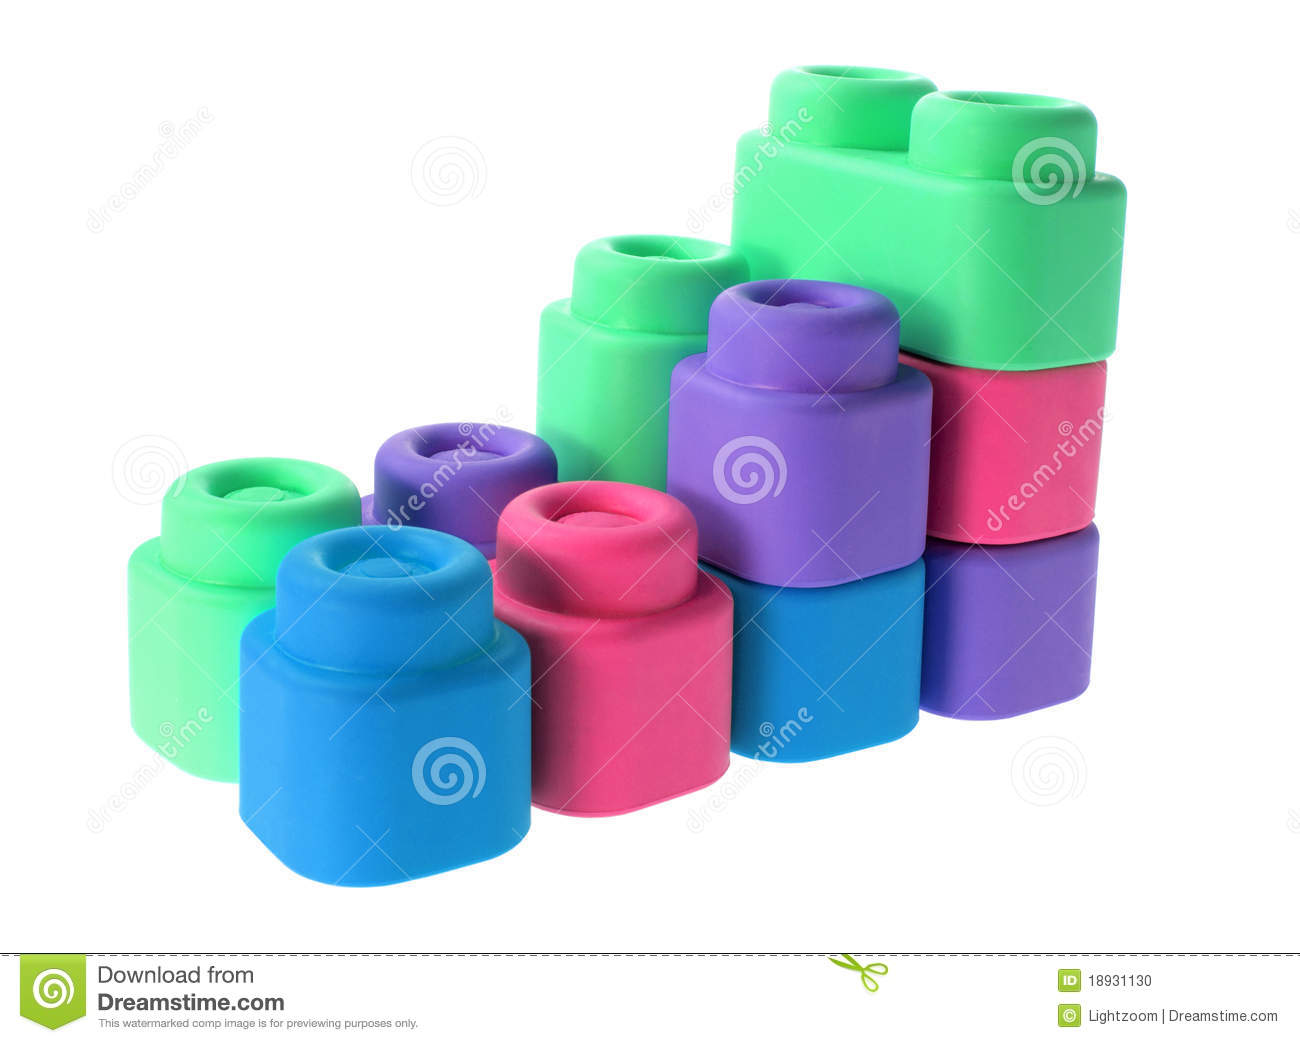 Plastic building blocks stock photo image 18931130 for Plastic building blocks home construction